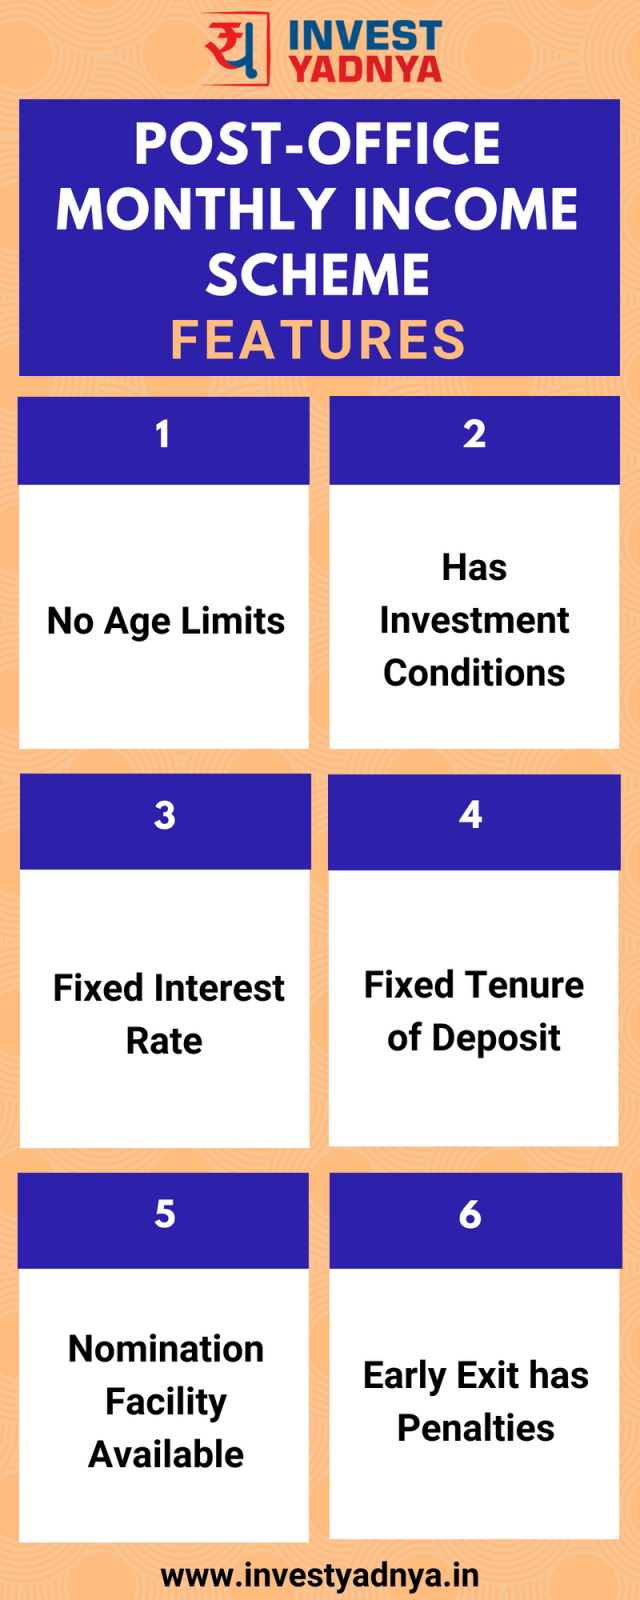 Features of Post-Office Monthly Income Scheme